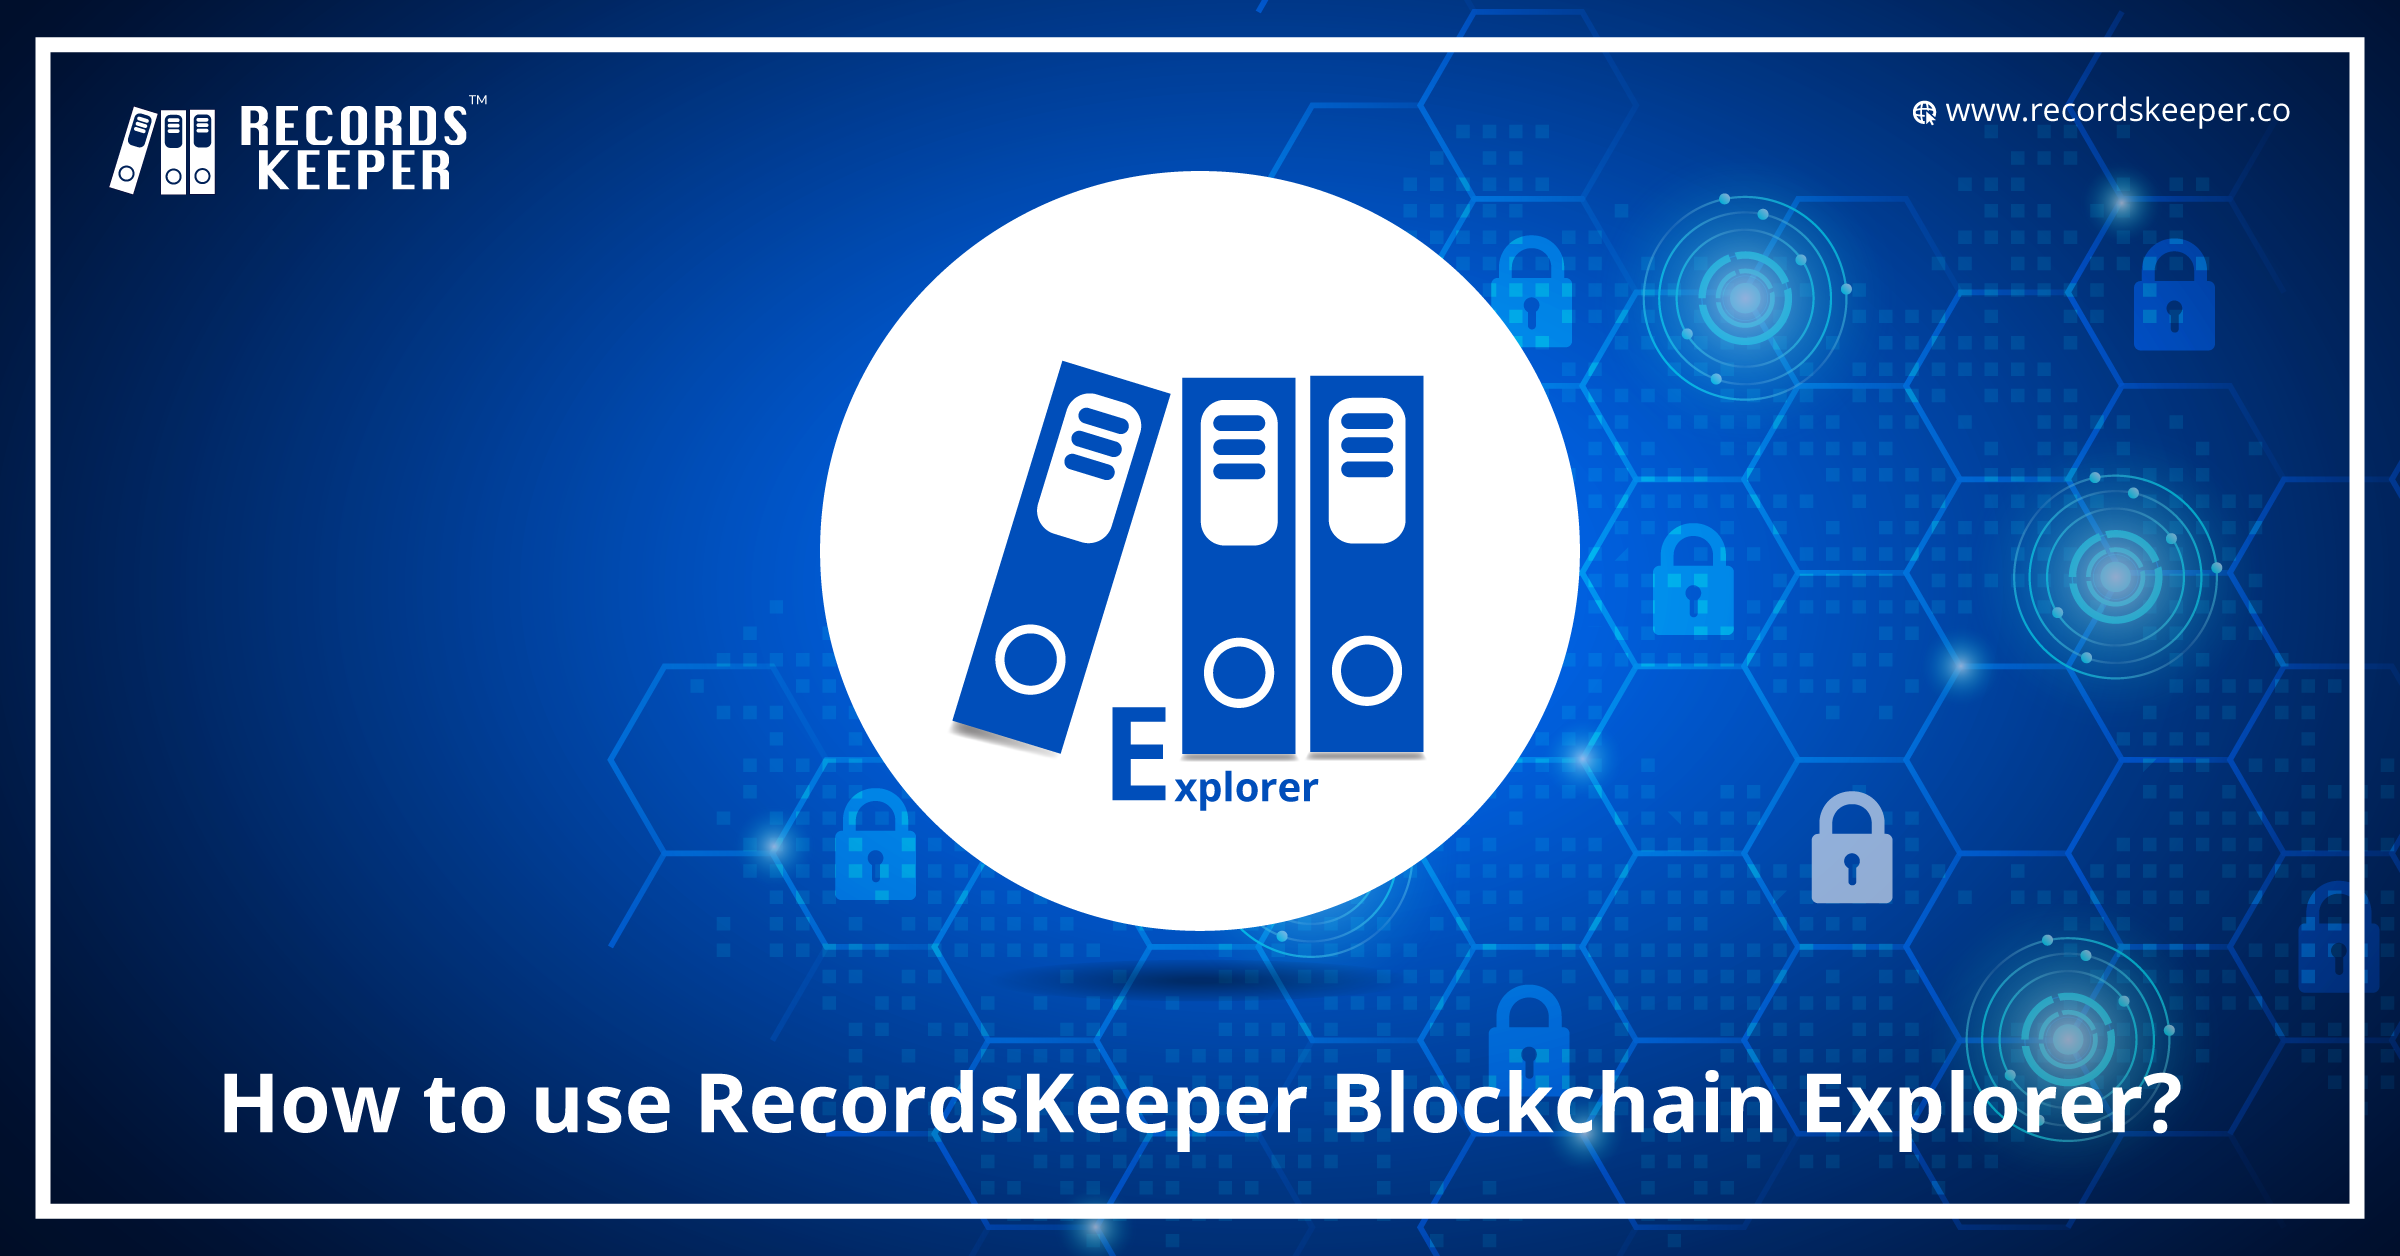 How to use RecordsKeeper Blockchain Explorer?